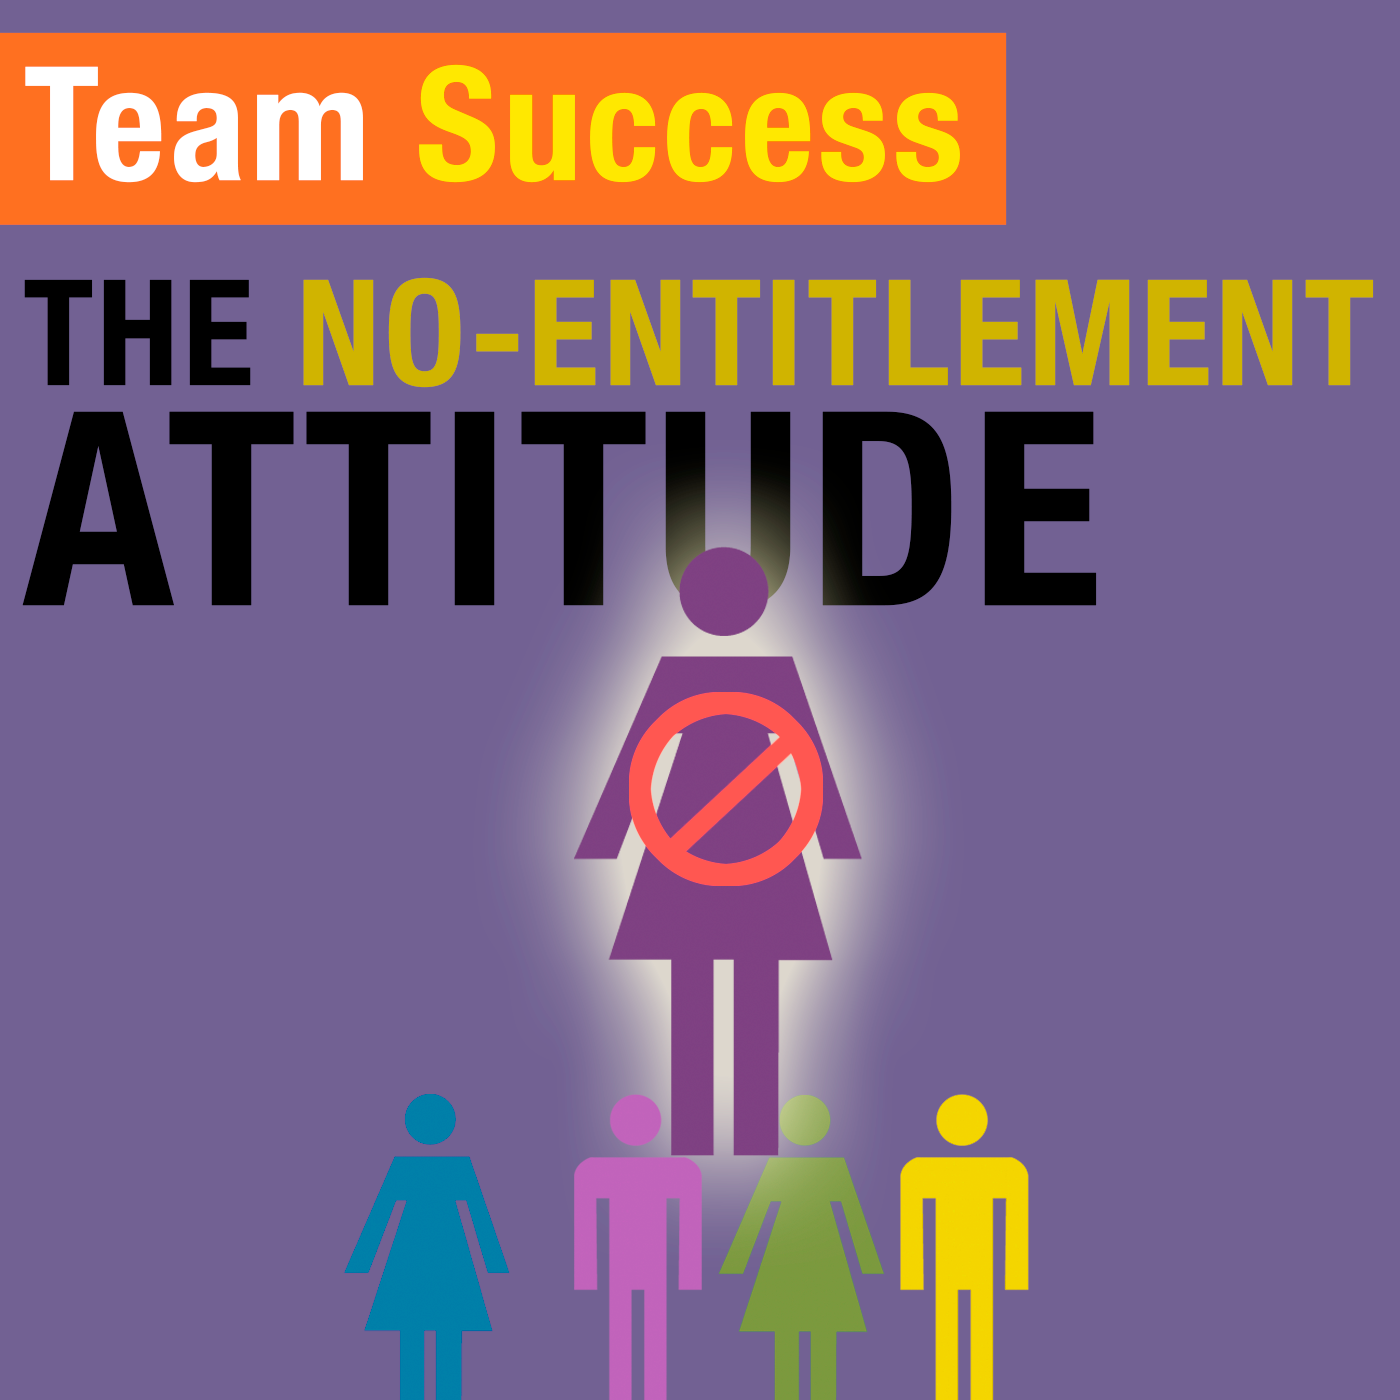 The No-Entitlement Attitude